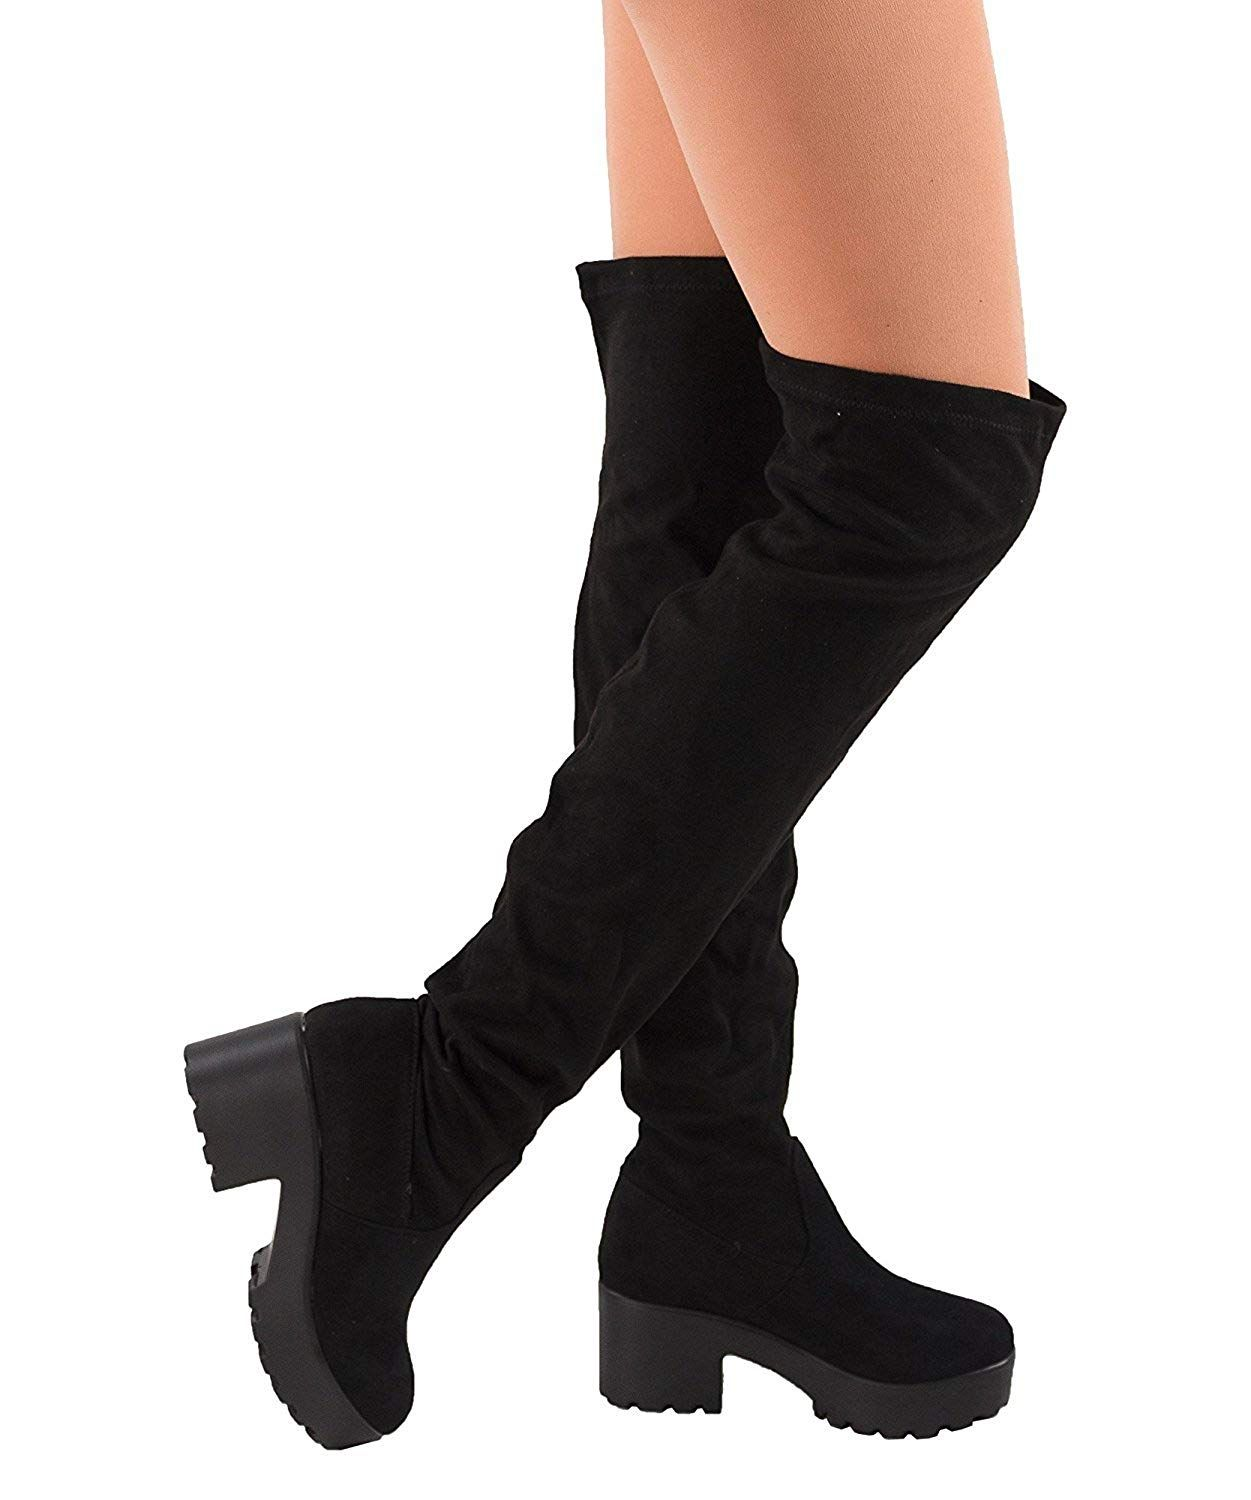 e28fac1fca3a Womens Thigh High Platform Boots Sexy Chunky Block Heel Stretch Pull on Over  The Knee Tall Boots. For stylish over the knee platform boots